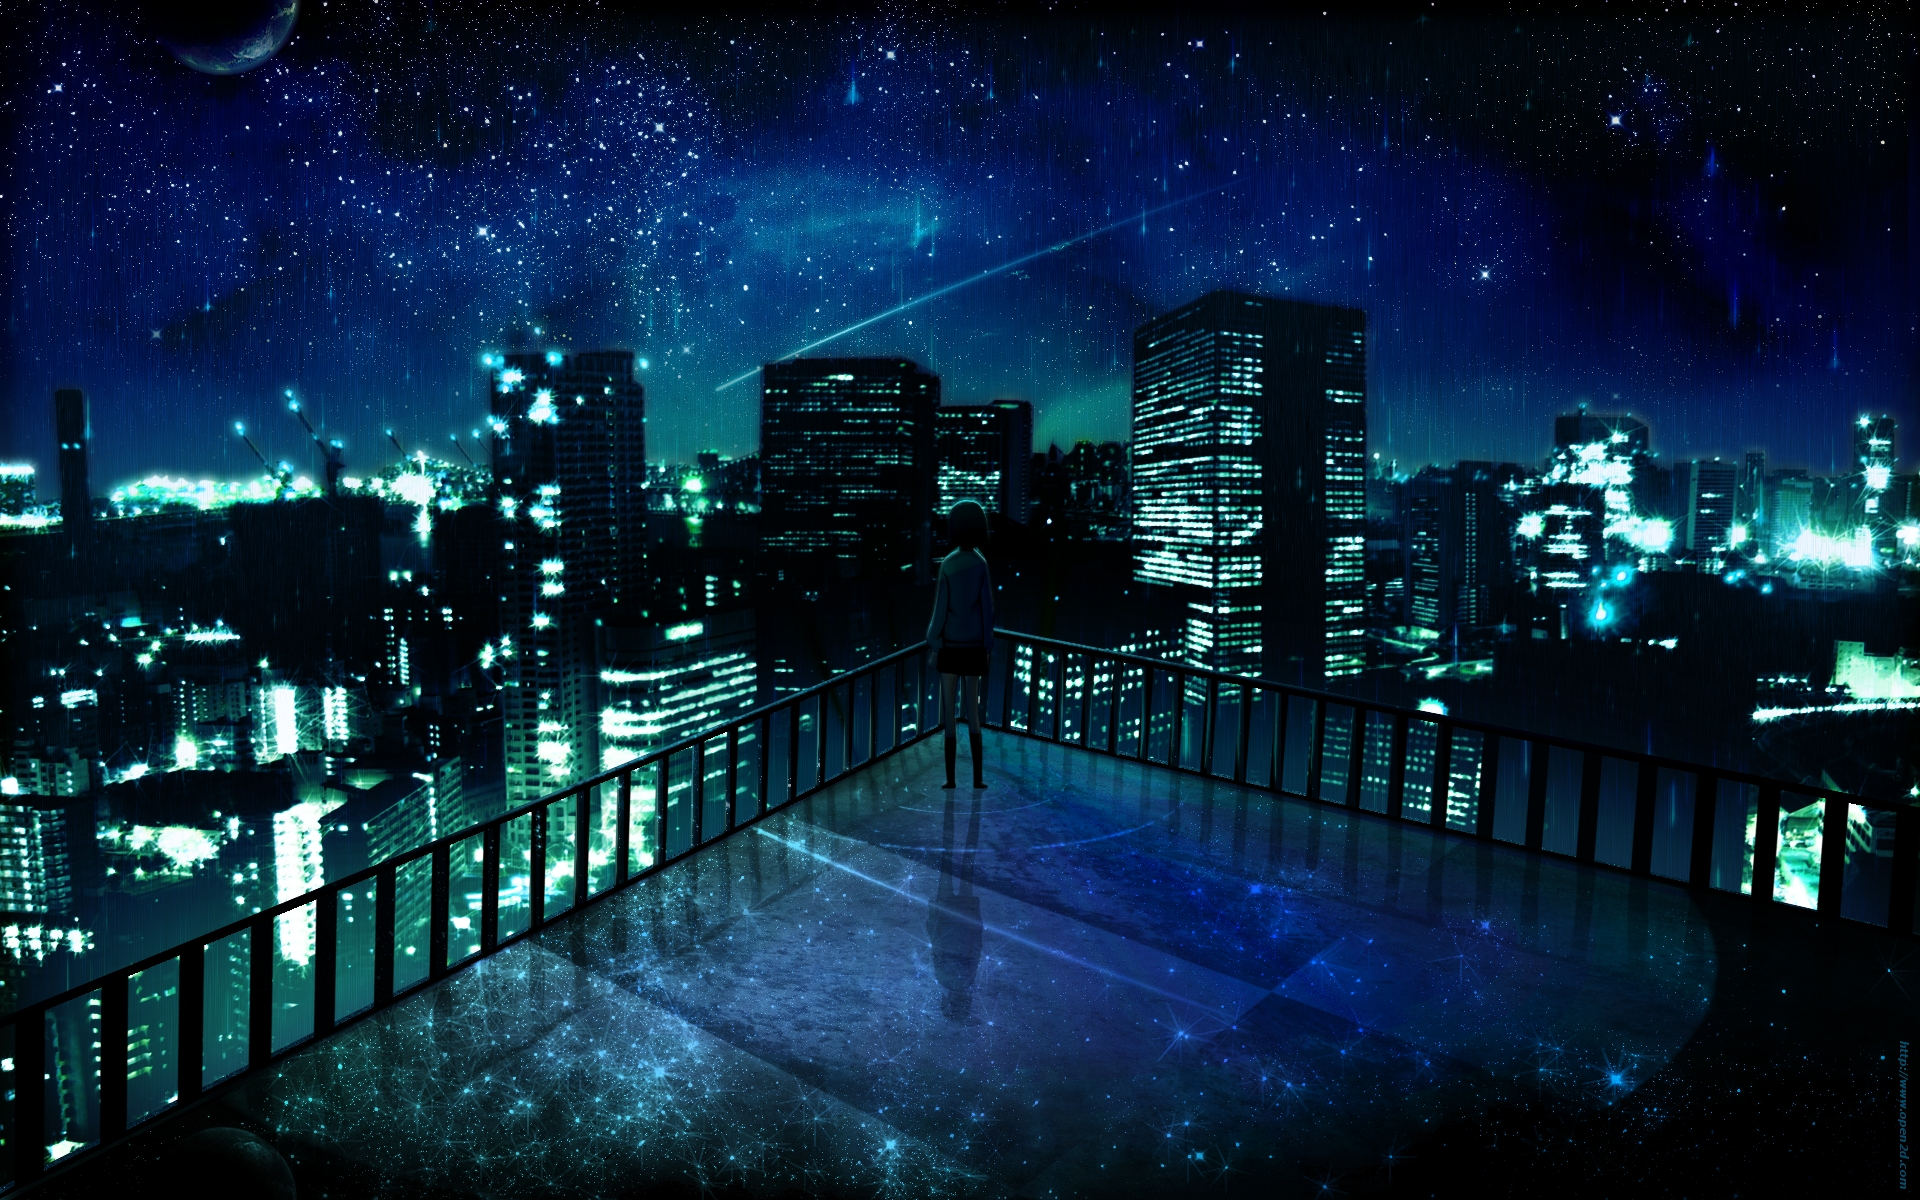 Night City Lala Sama Club Ados Design Wallpaper 1920x1200 Full HD 1920x1200